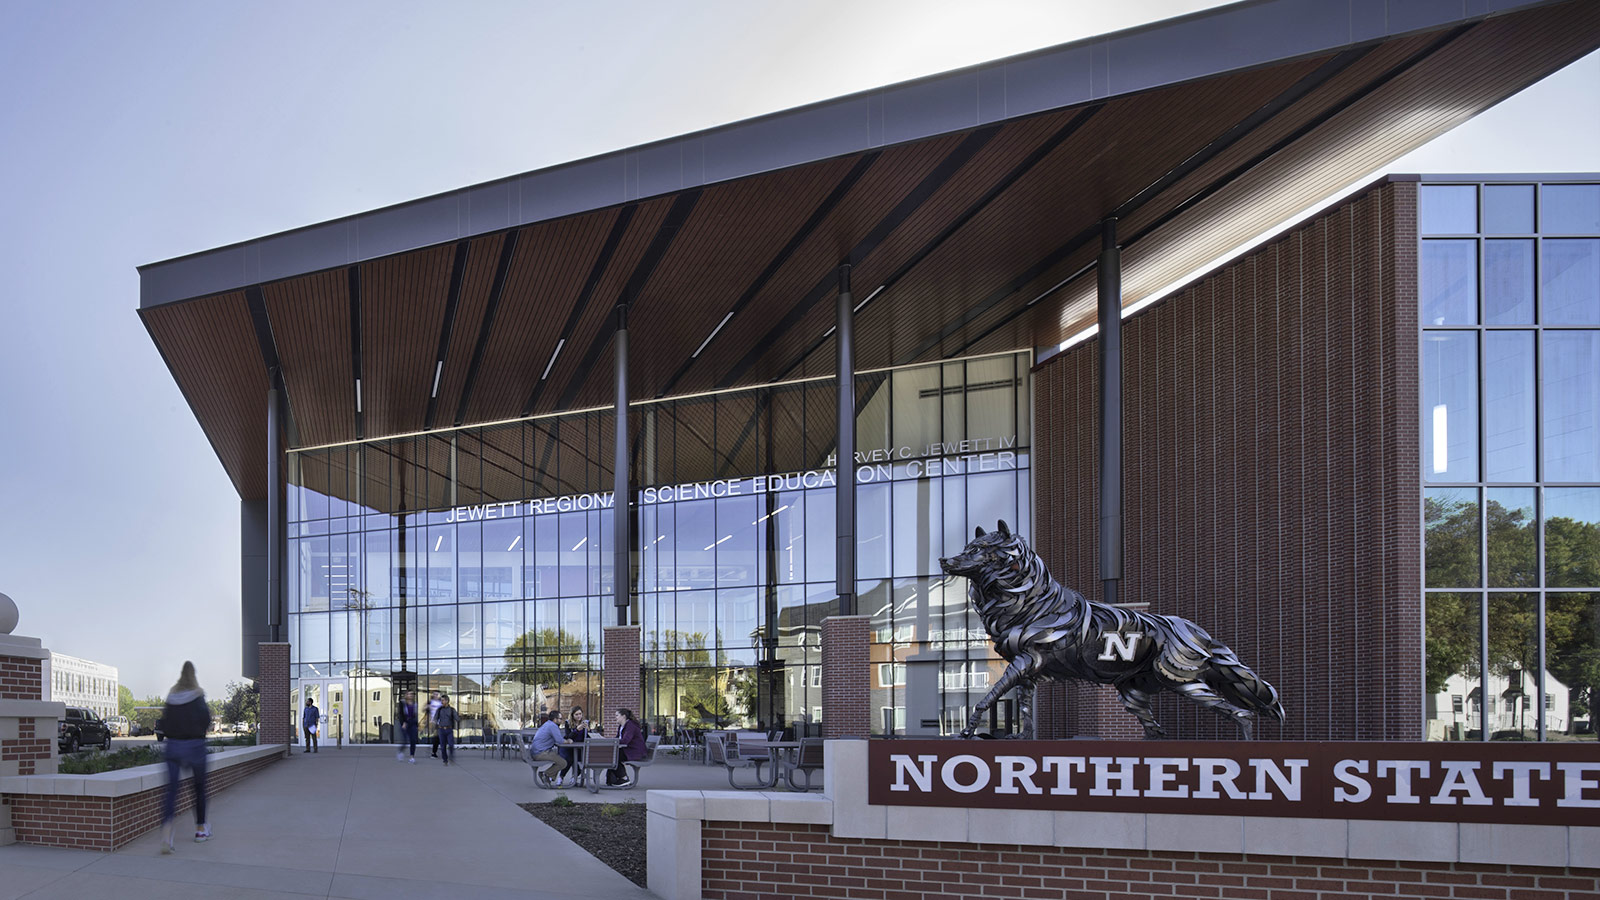 Northern State University Jewett Regional Science Education Center